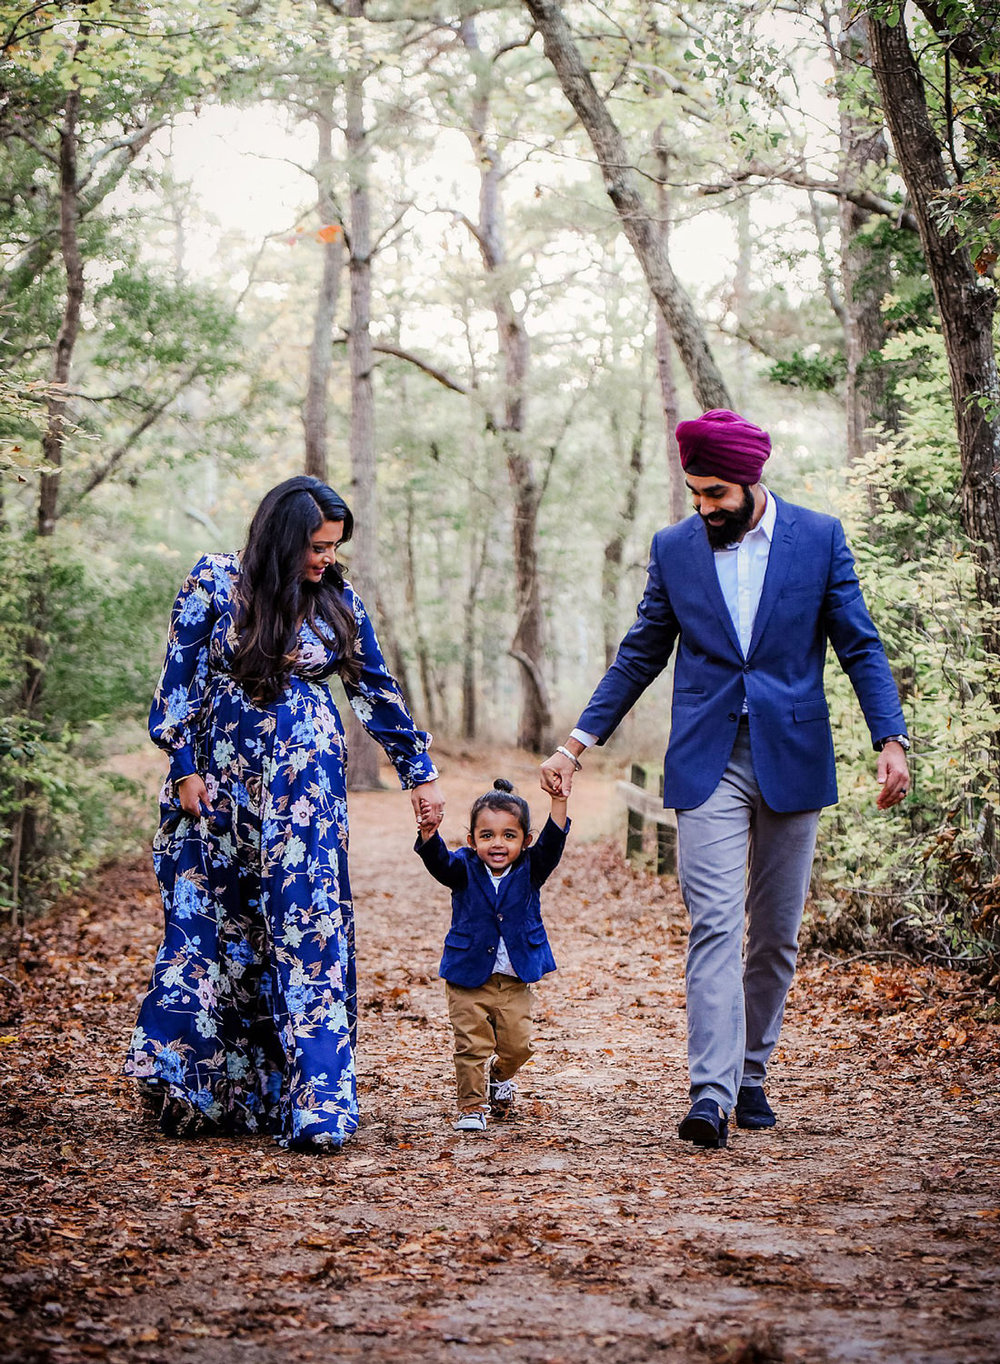 family-of-three-at-first-landing-state-park-trail-virginia-beach-melissa-bliss-photography.jpg